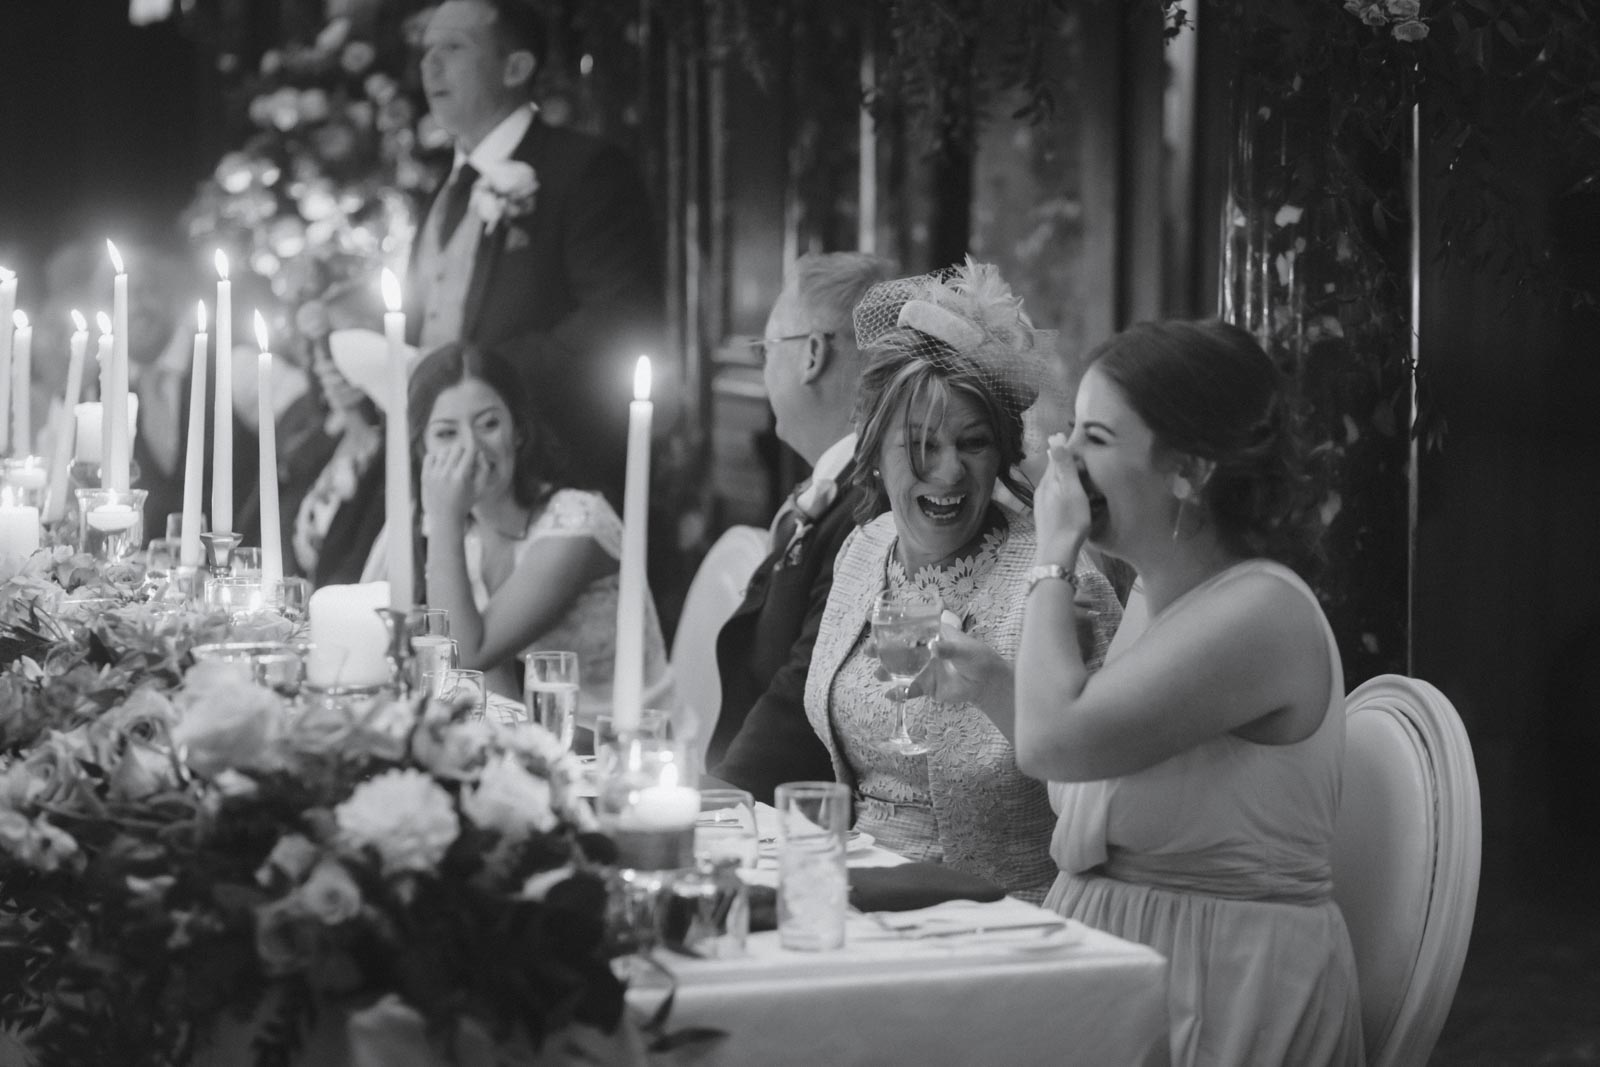 Reportage image of laughter in speeches at wedding